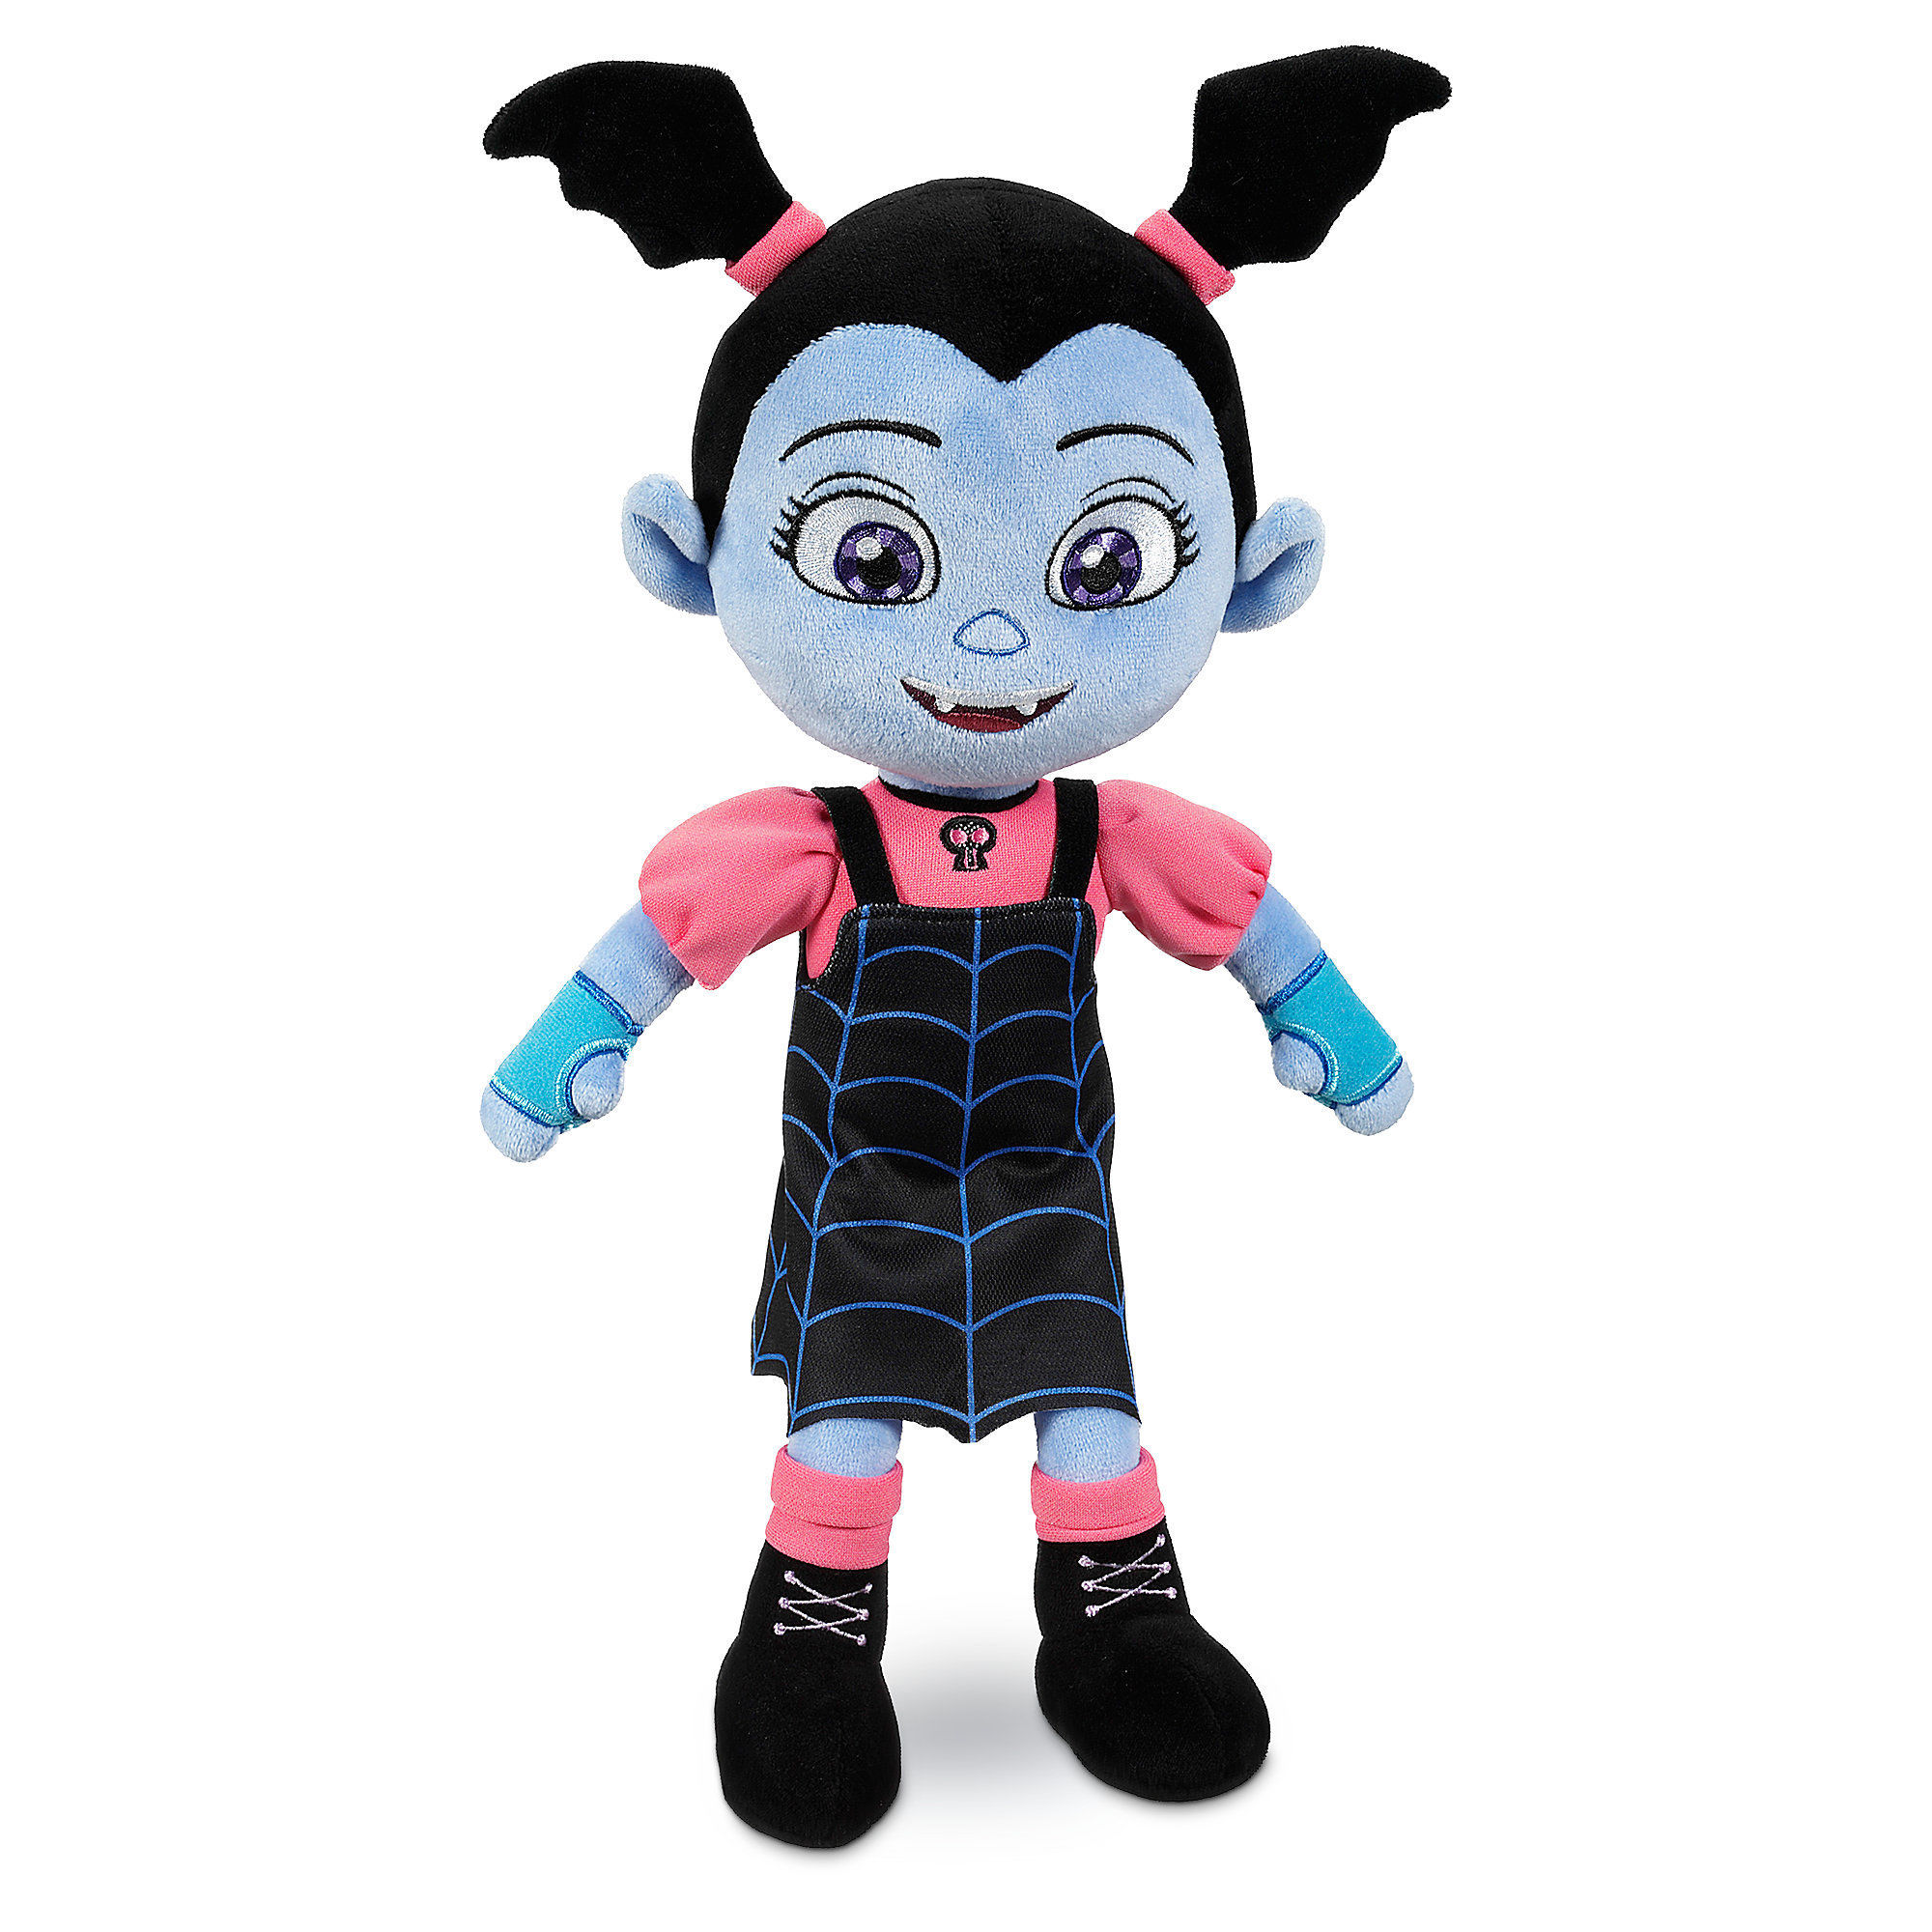 Disney Vampirina Vee Plush Doll 35cm from Disney Store